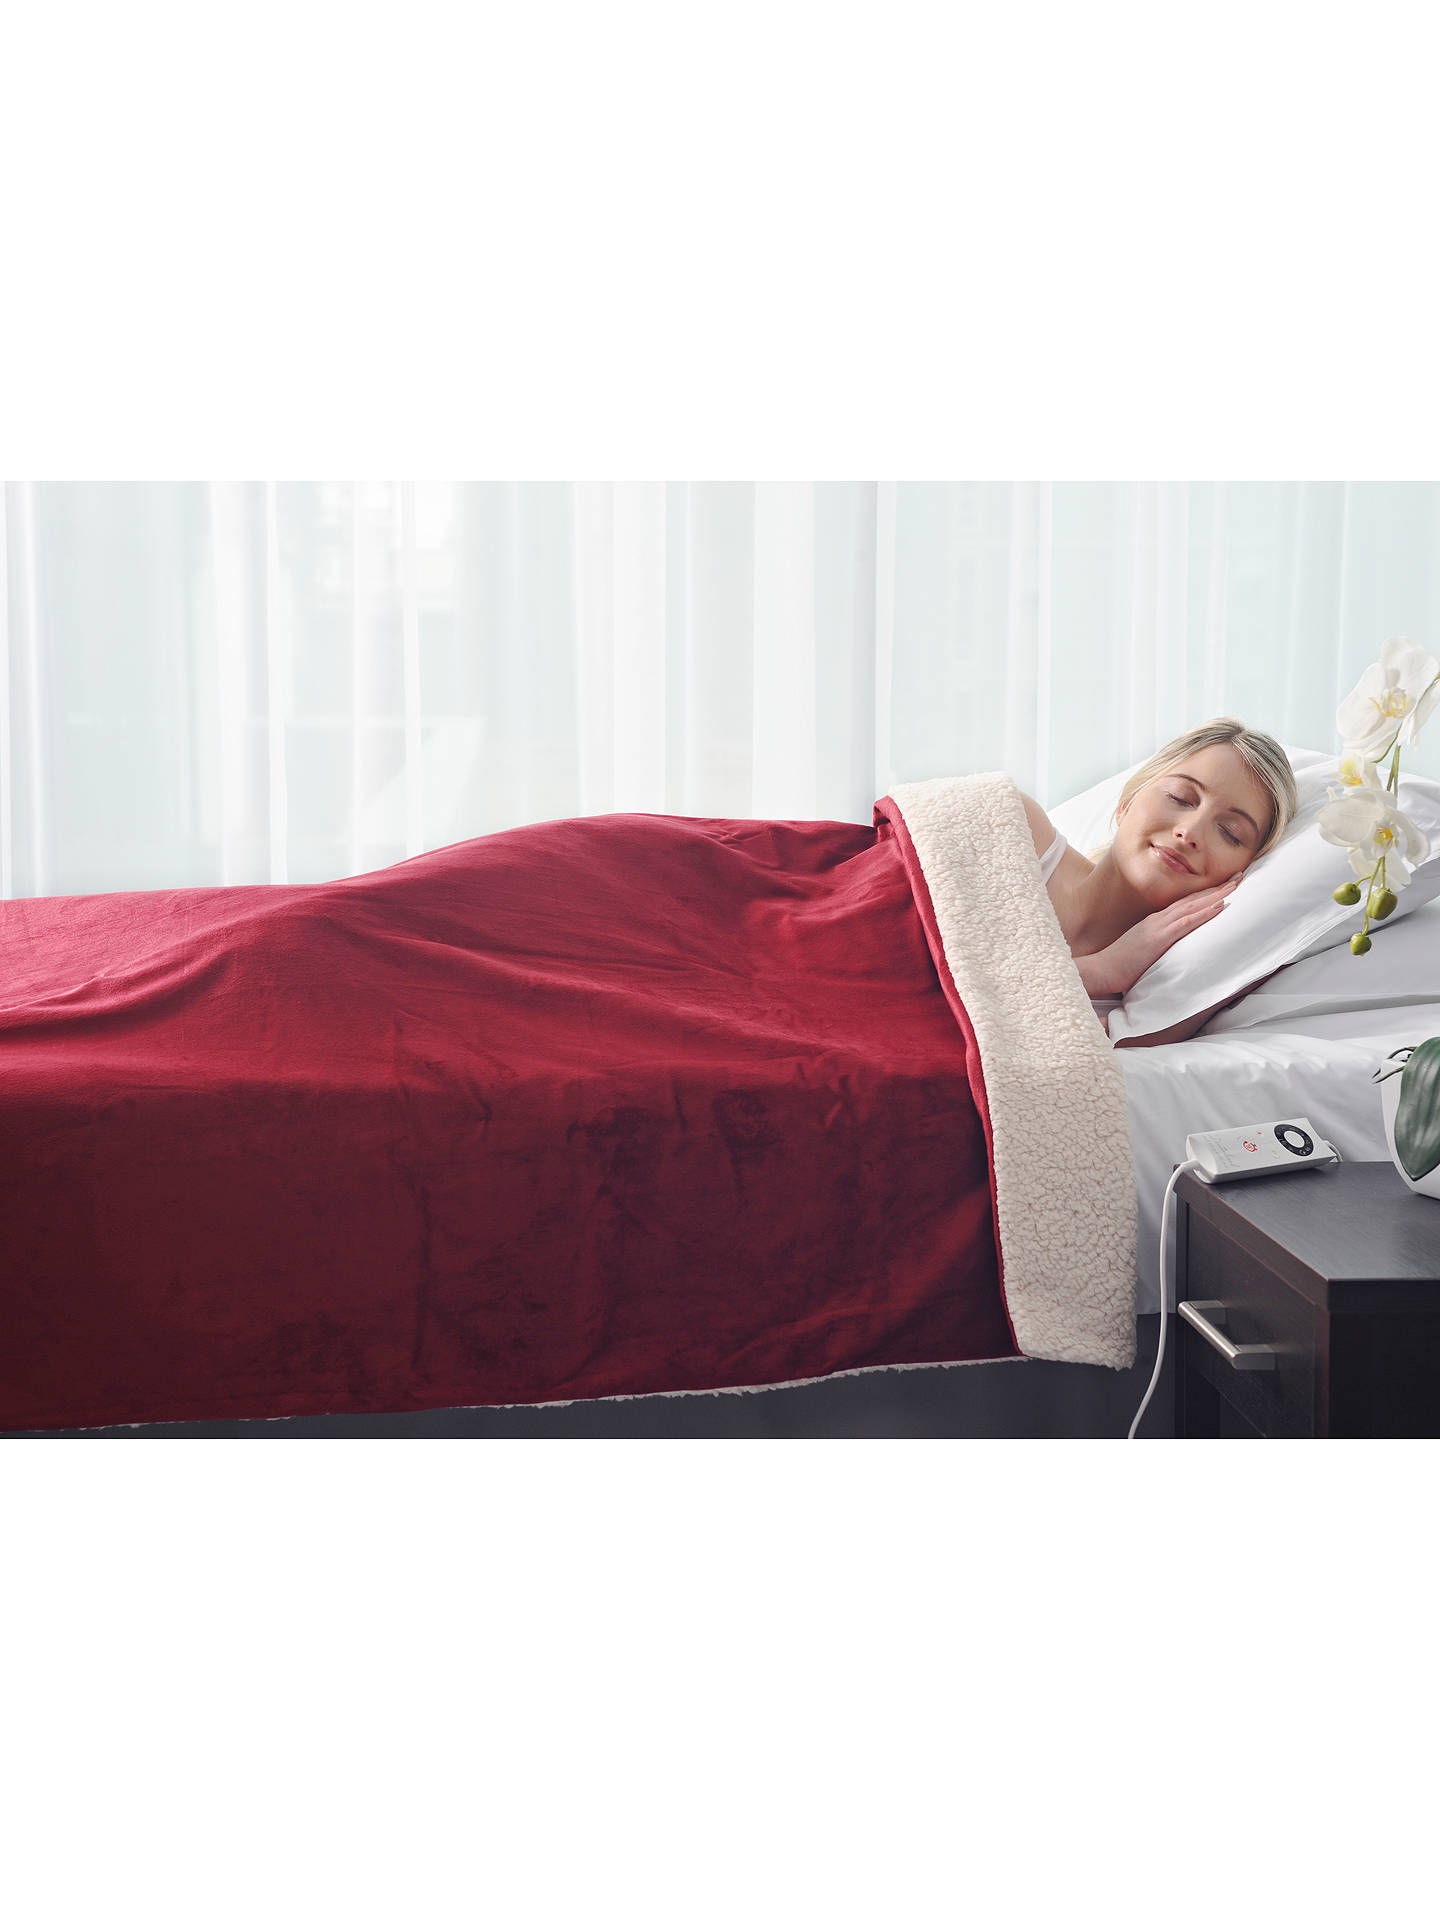 Buy Dreamland Intelliheat Sherpa Heated Throw, Red Online at johnlewis.com